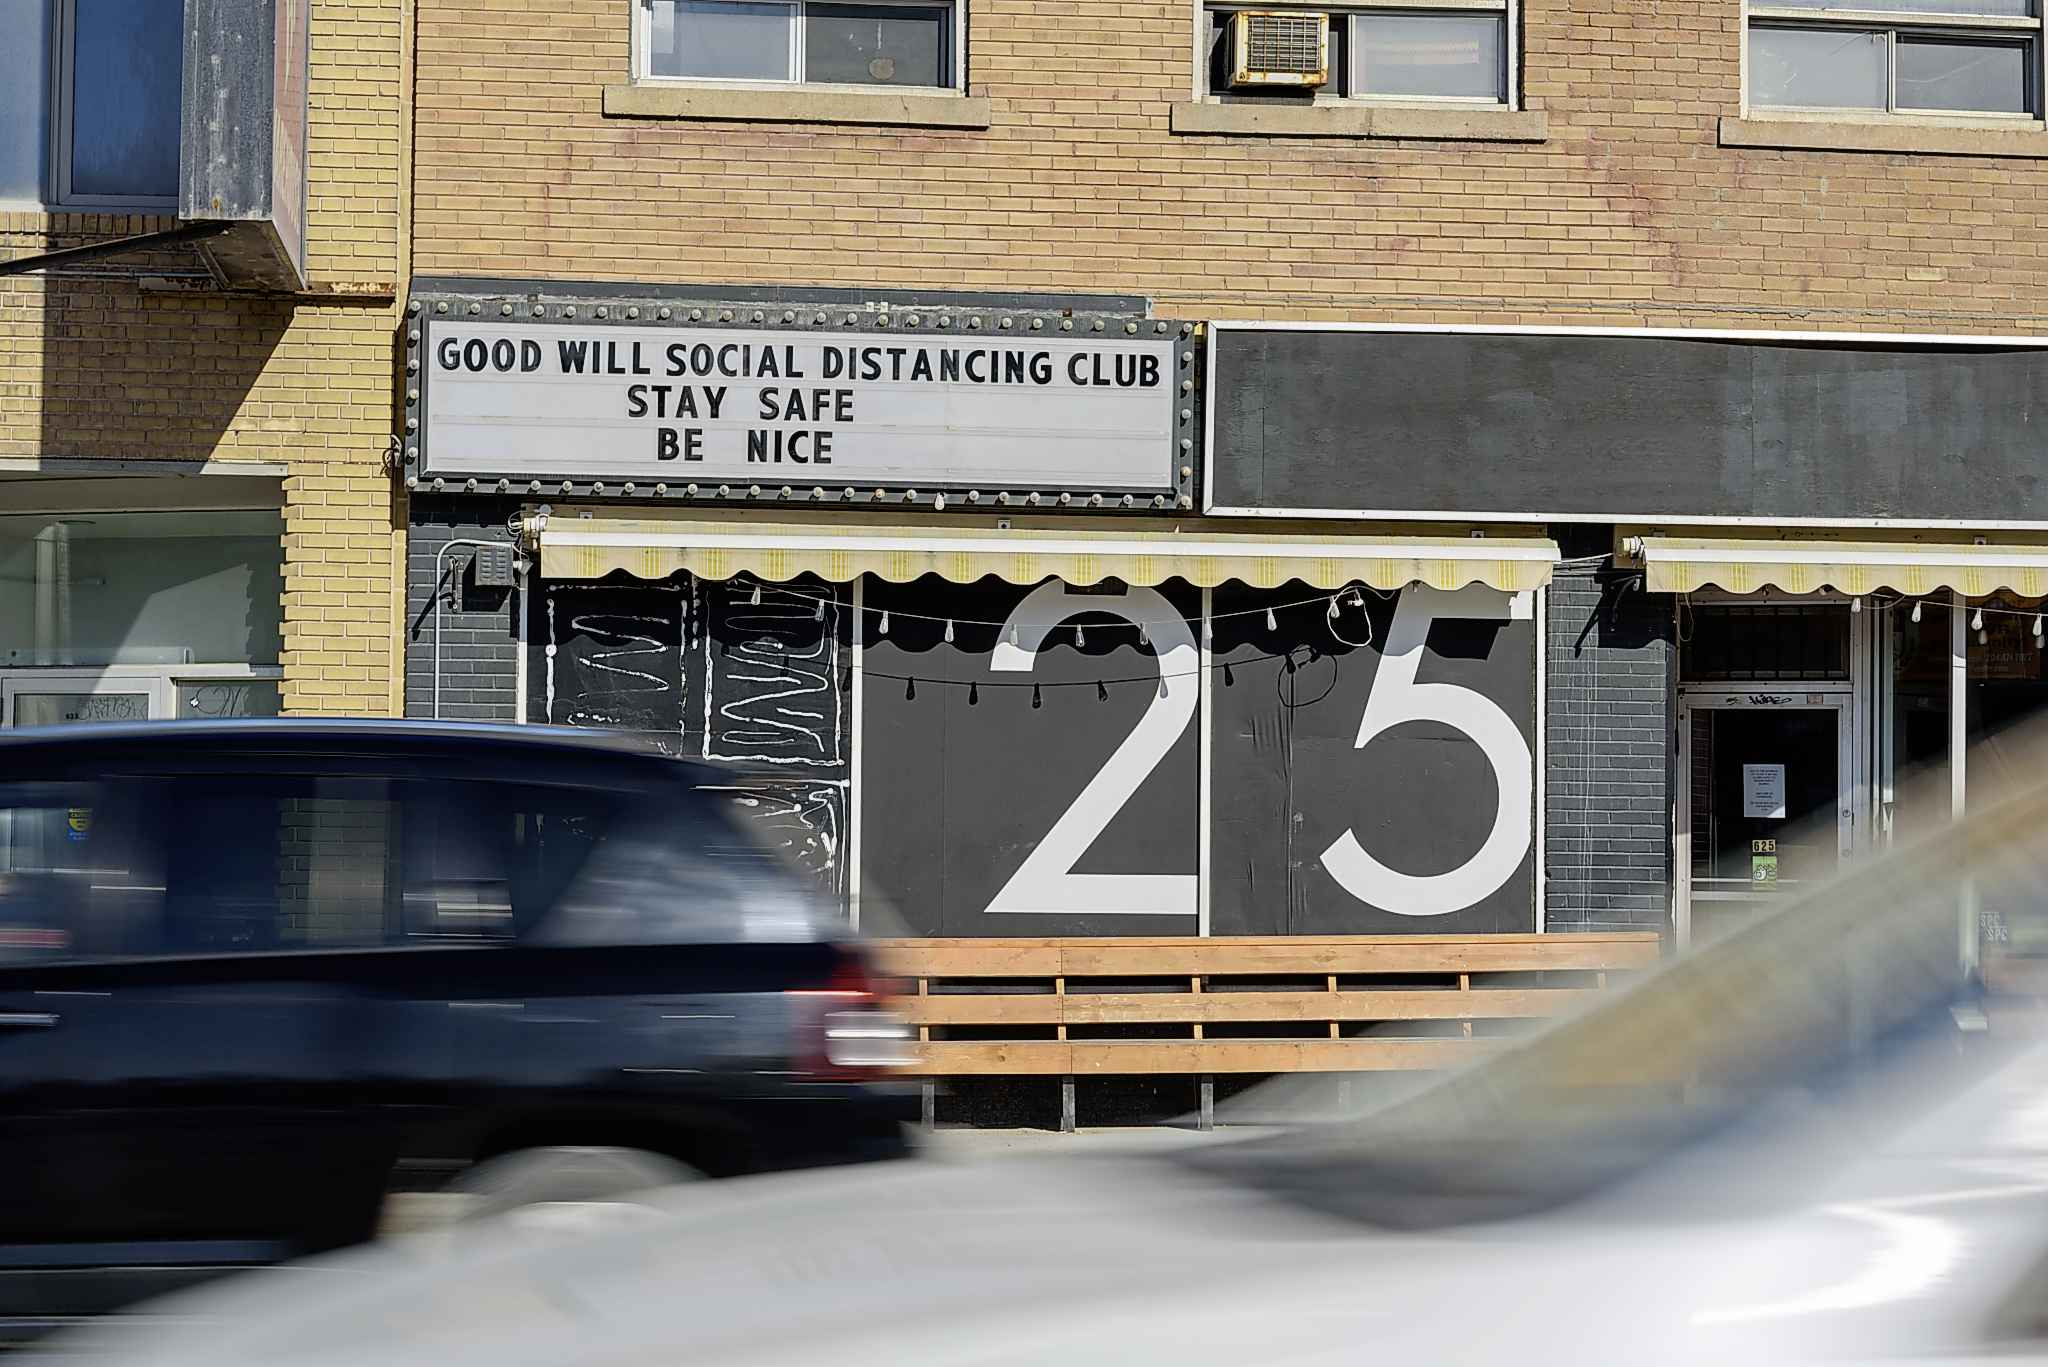 JESSE BOILY / WINNIPEG FREE PRESS  The Good Will Social Club promotes social distancing on their sign.